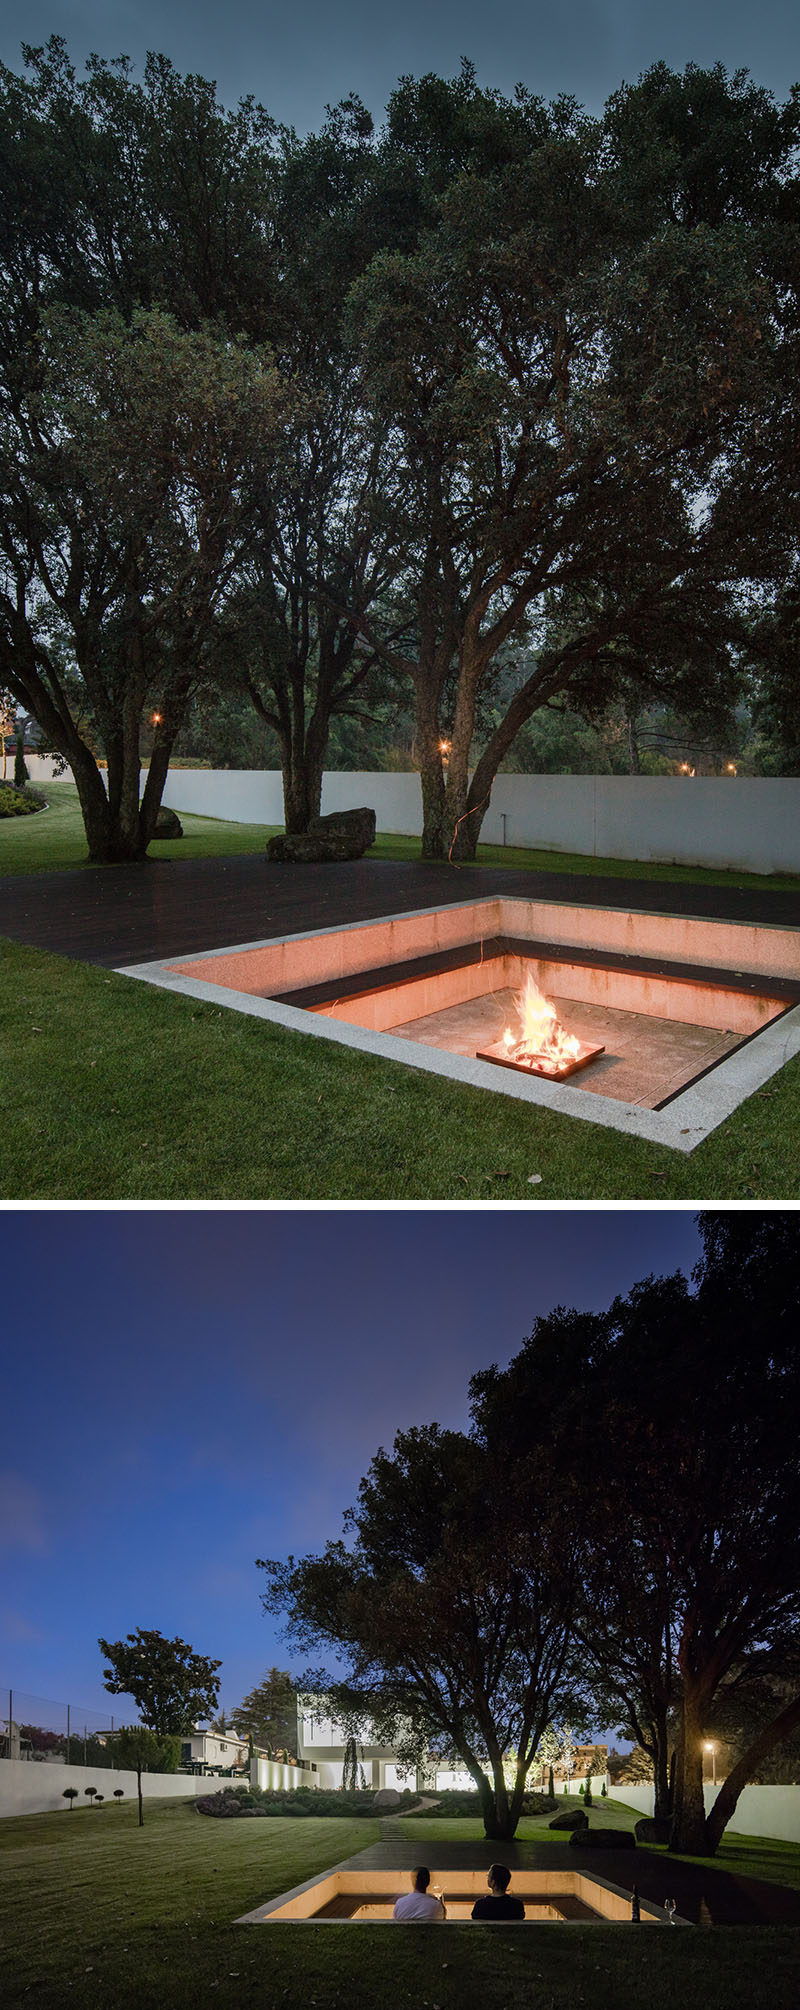 Sunken down into the grassy landscaped yard of this modern house, is a square lounging pit with built-in seating that wraps around the fire and allows people to lean against the wall. From the lounge, you are able to have a view of the house, and at night it's lit up, highlighting the design of the house. #FirePit #Landscaping #Backyard #OutdoorLounge #SunkenFirePit